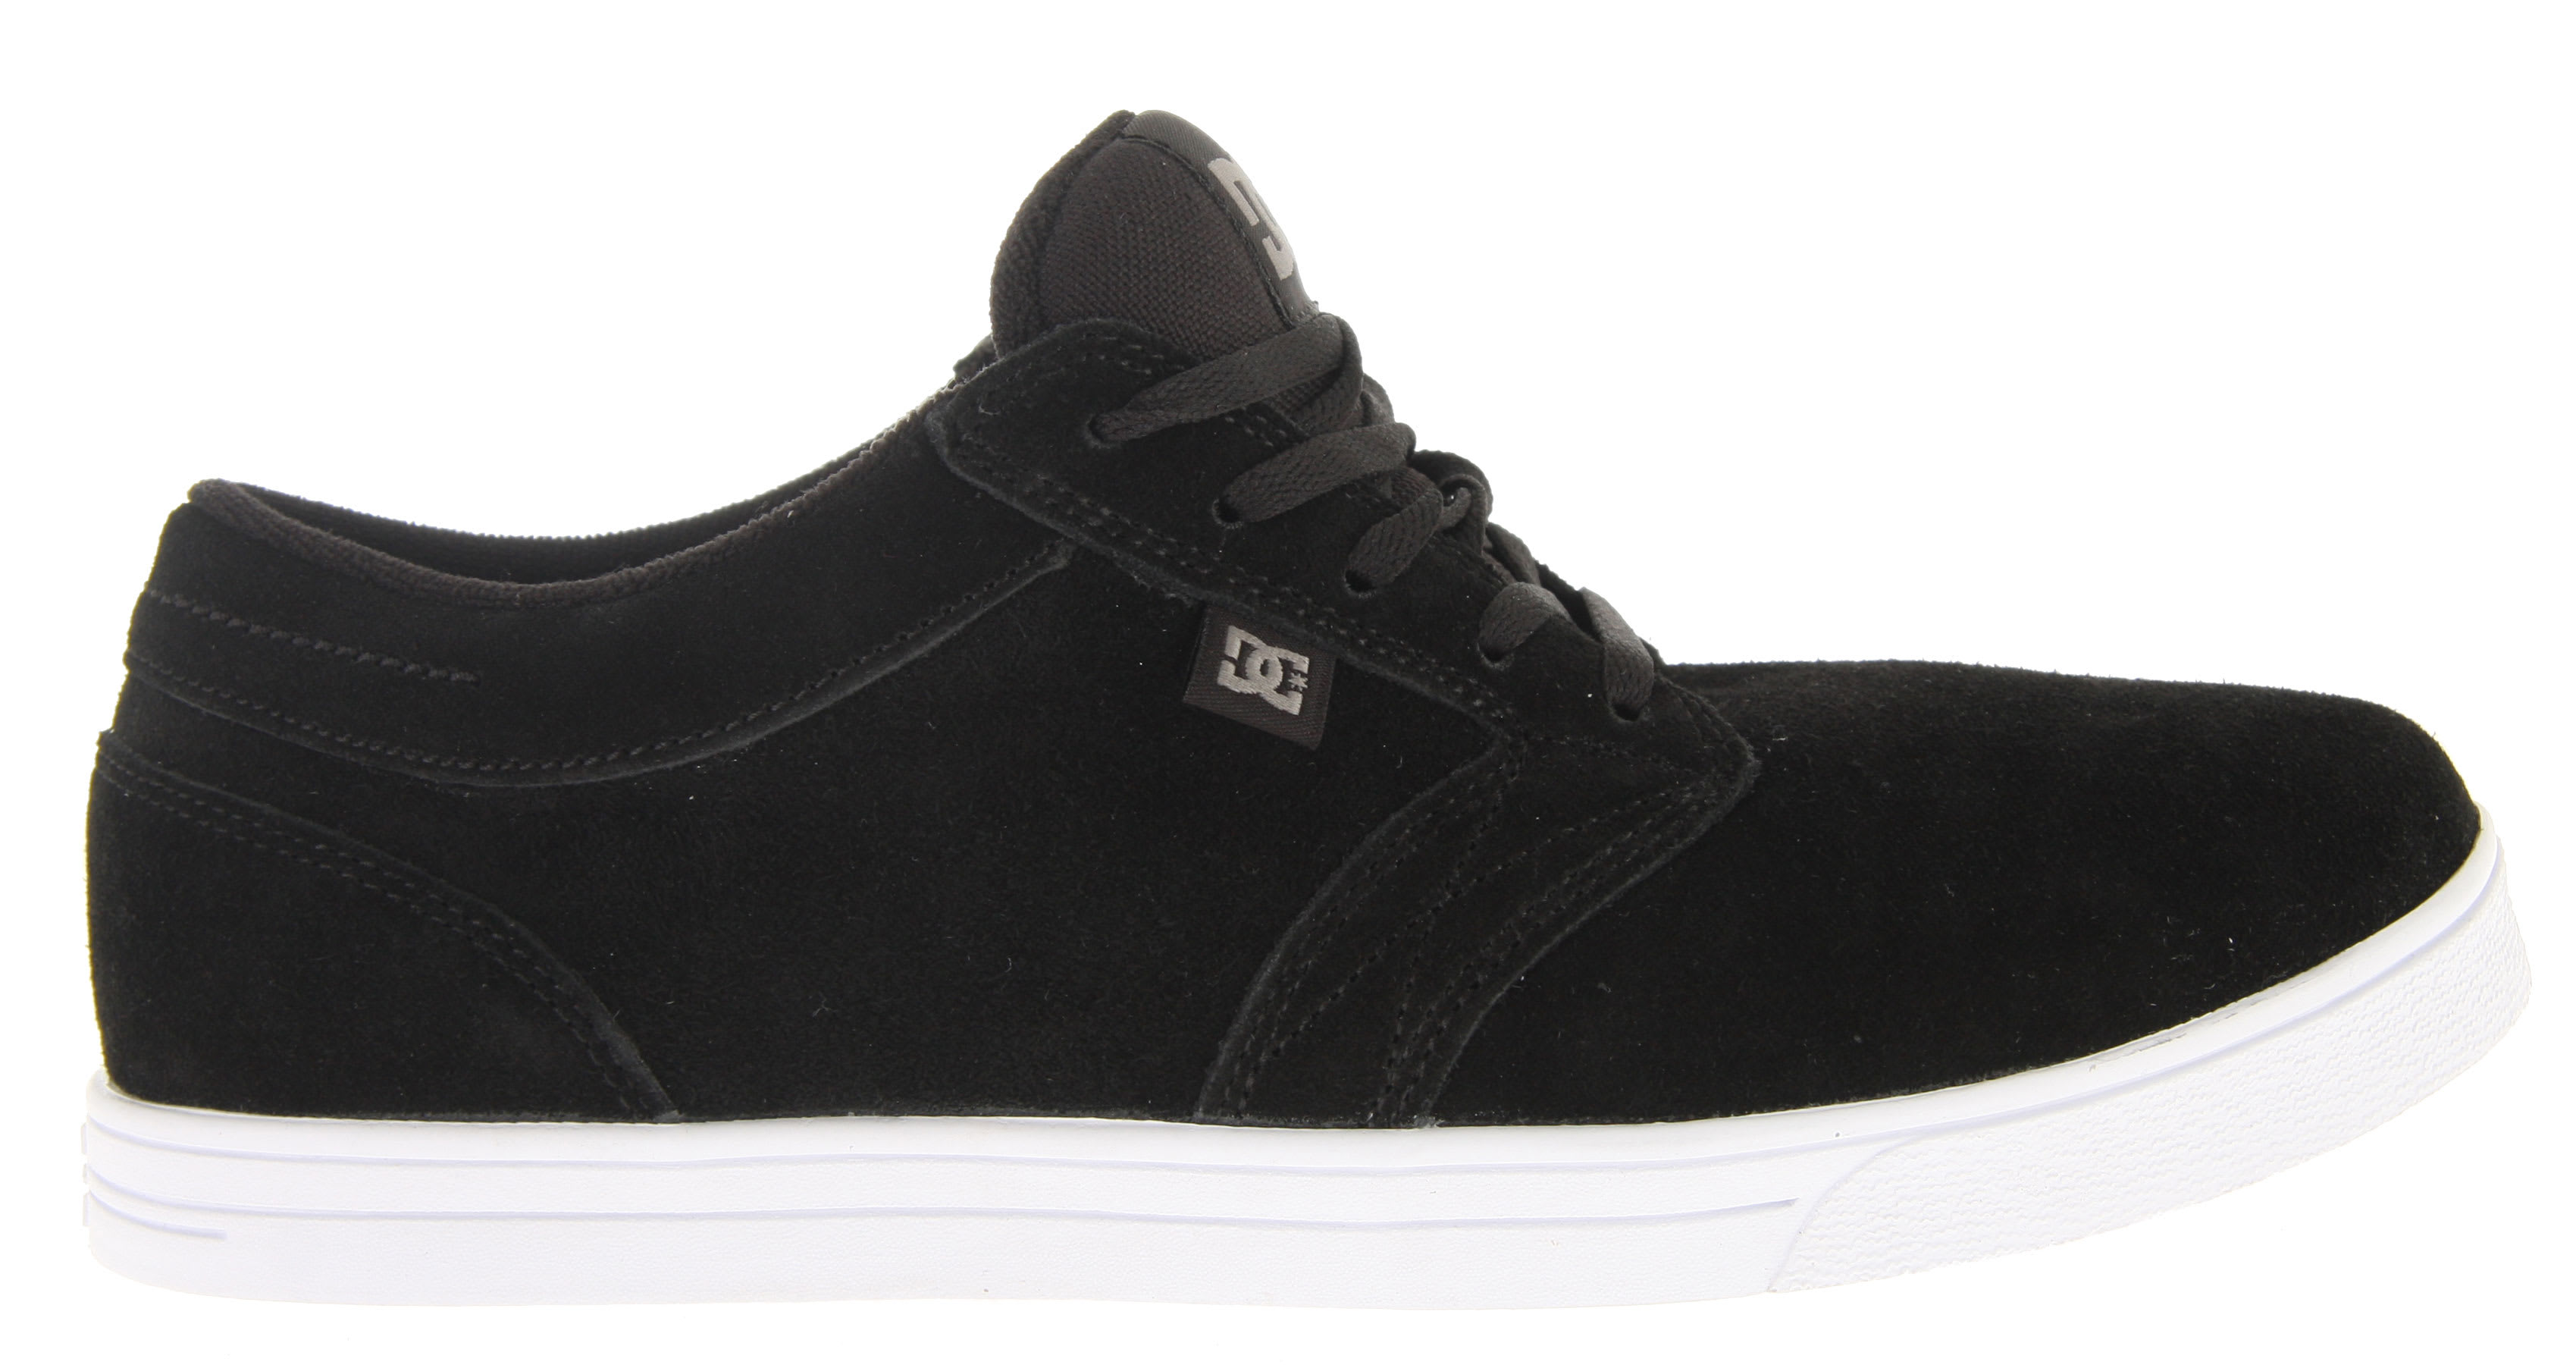 Shop for DC Range Skate Shoes Black - Men's